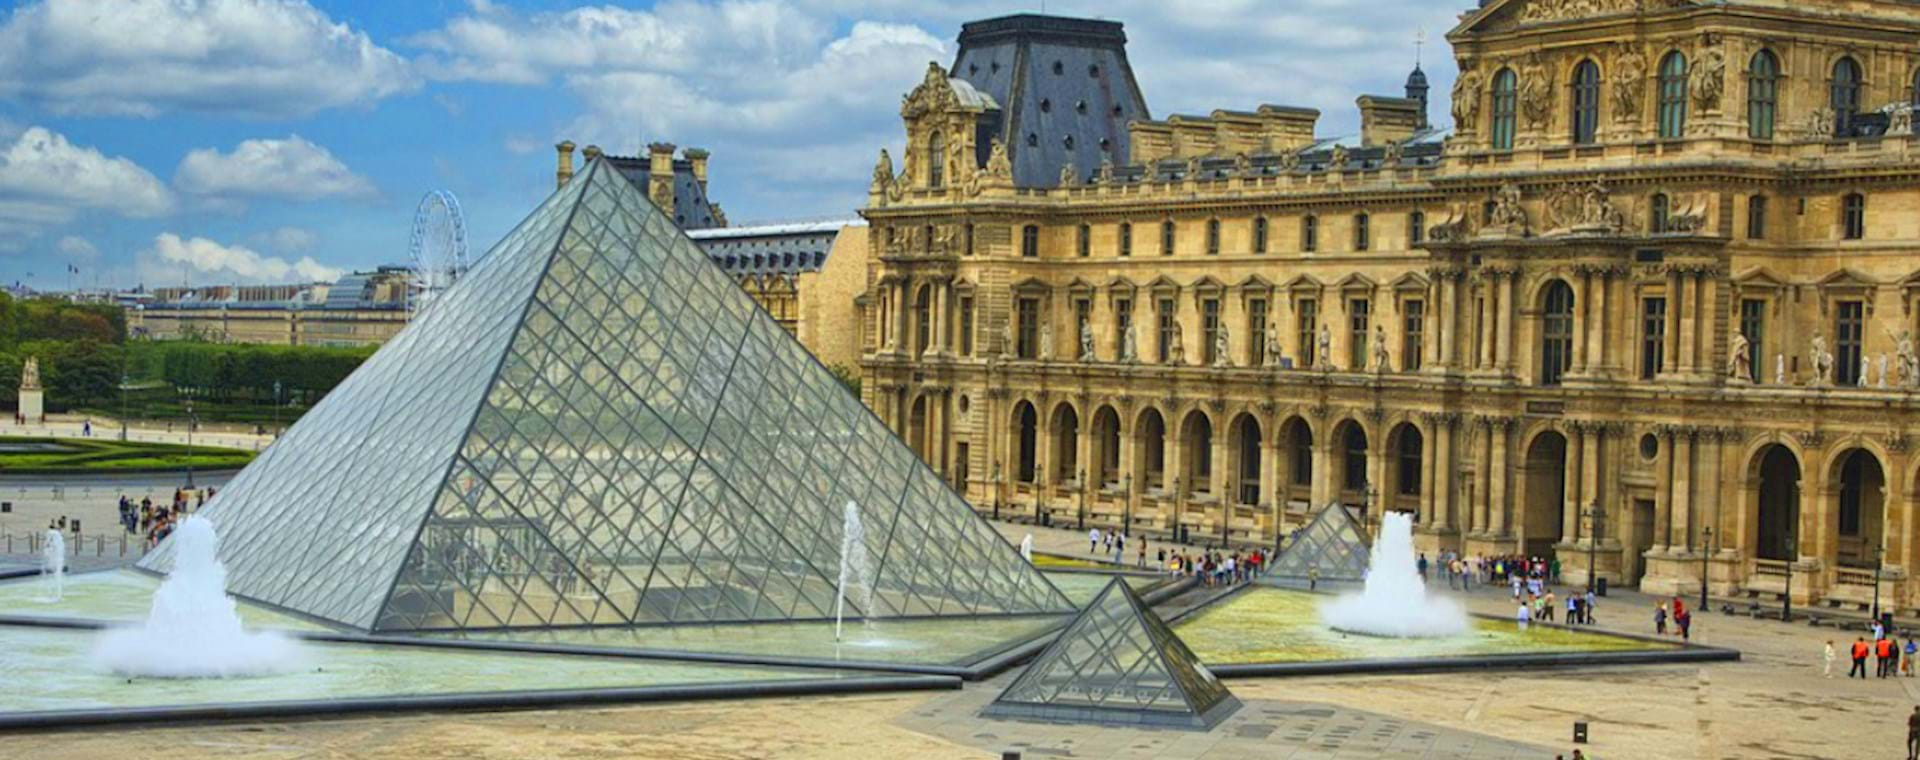 View of the Louvre Museums and the Pyramid